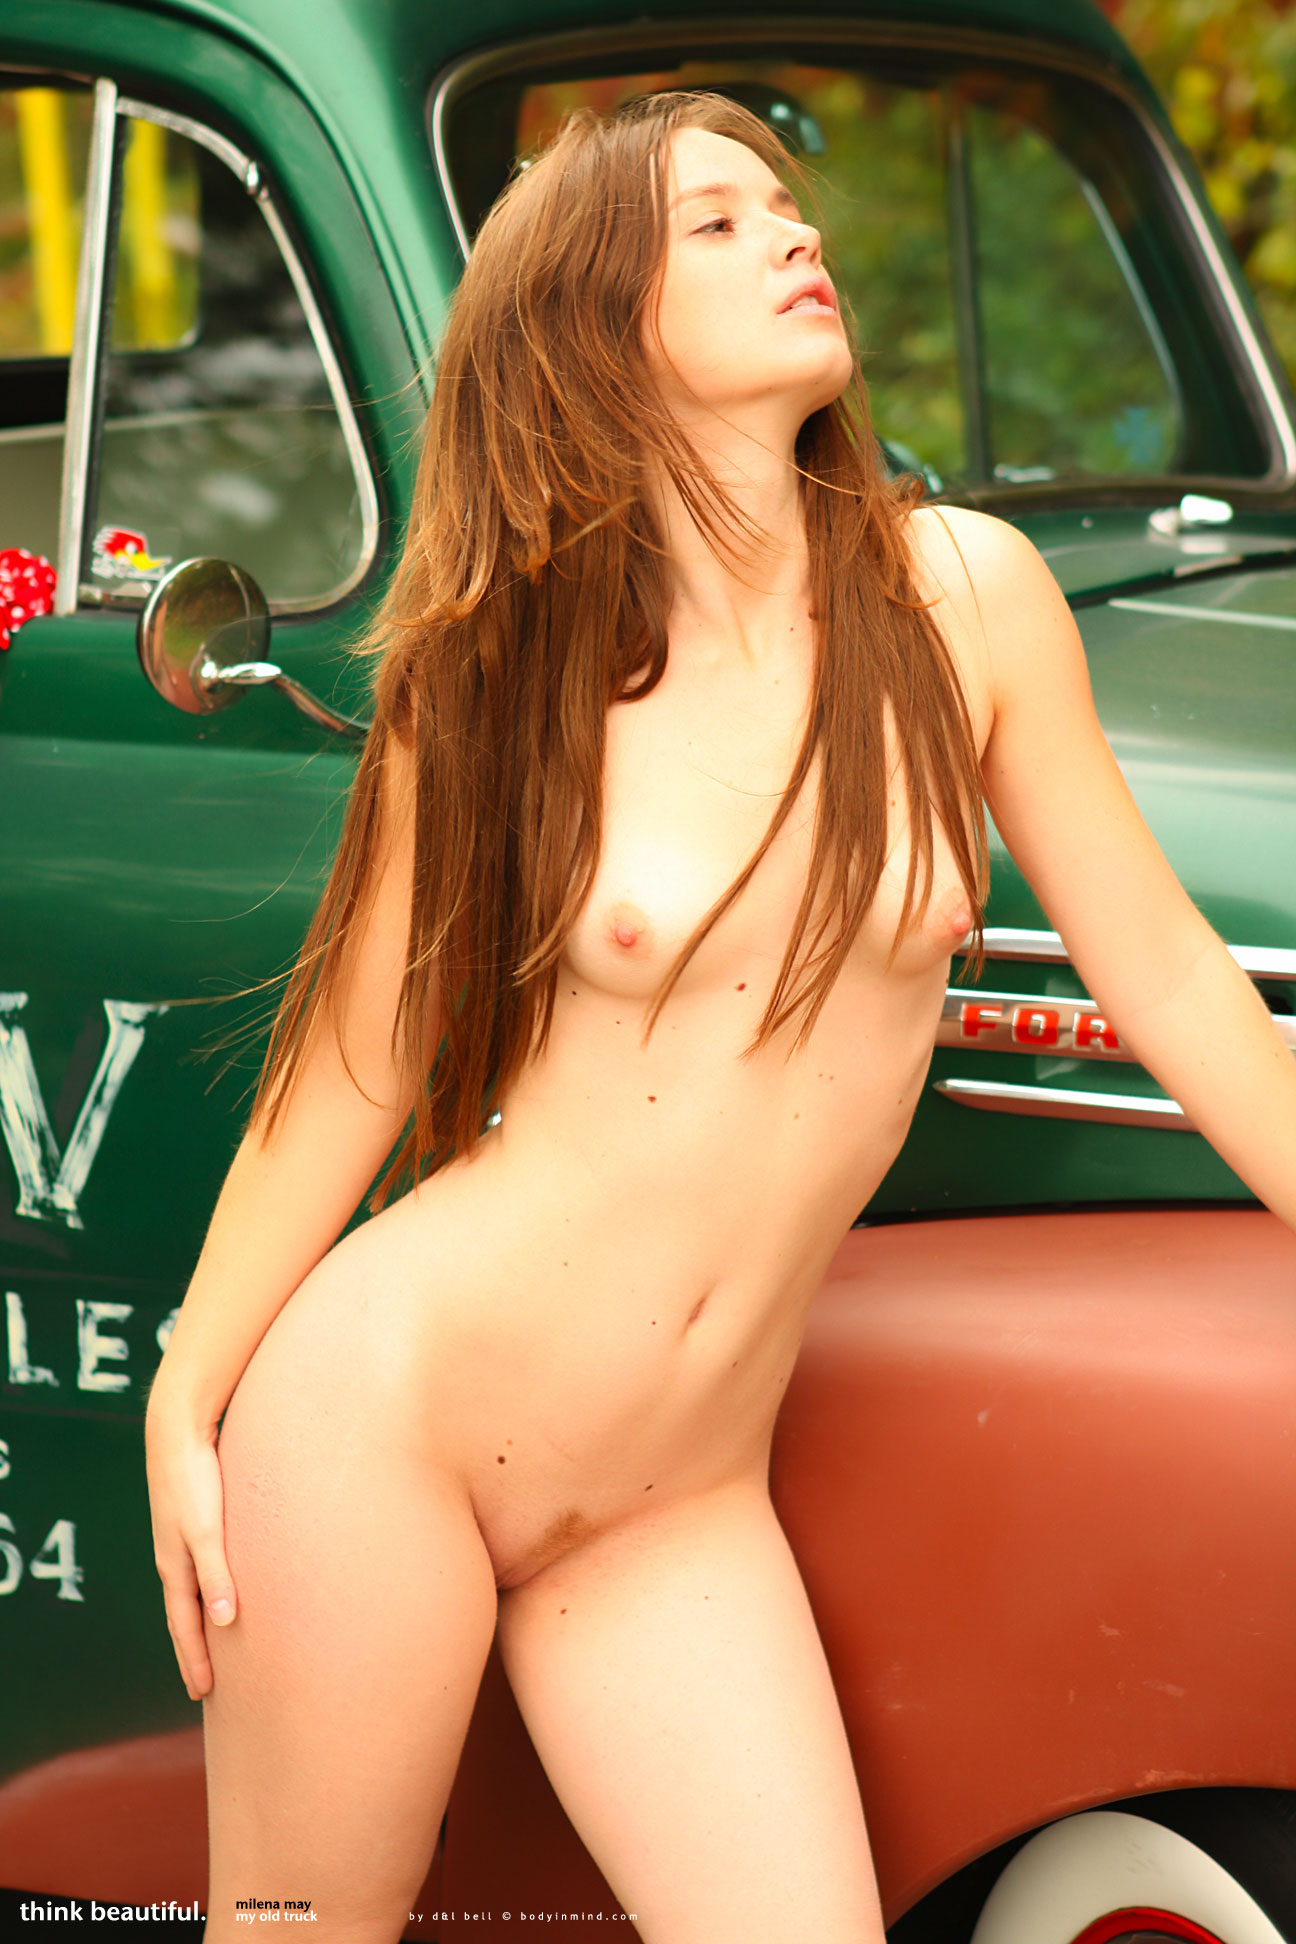 Naked women and girl picture 116